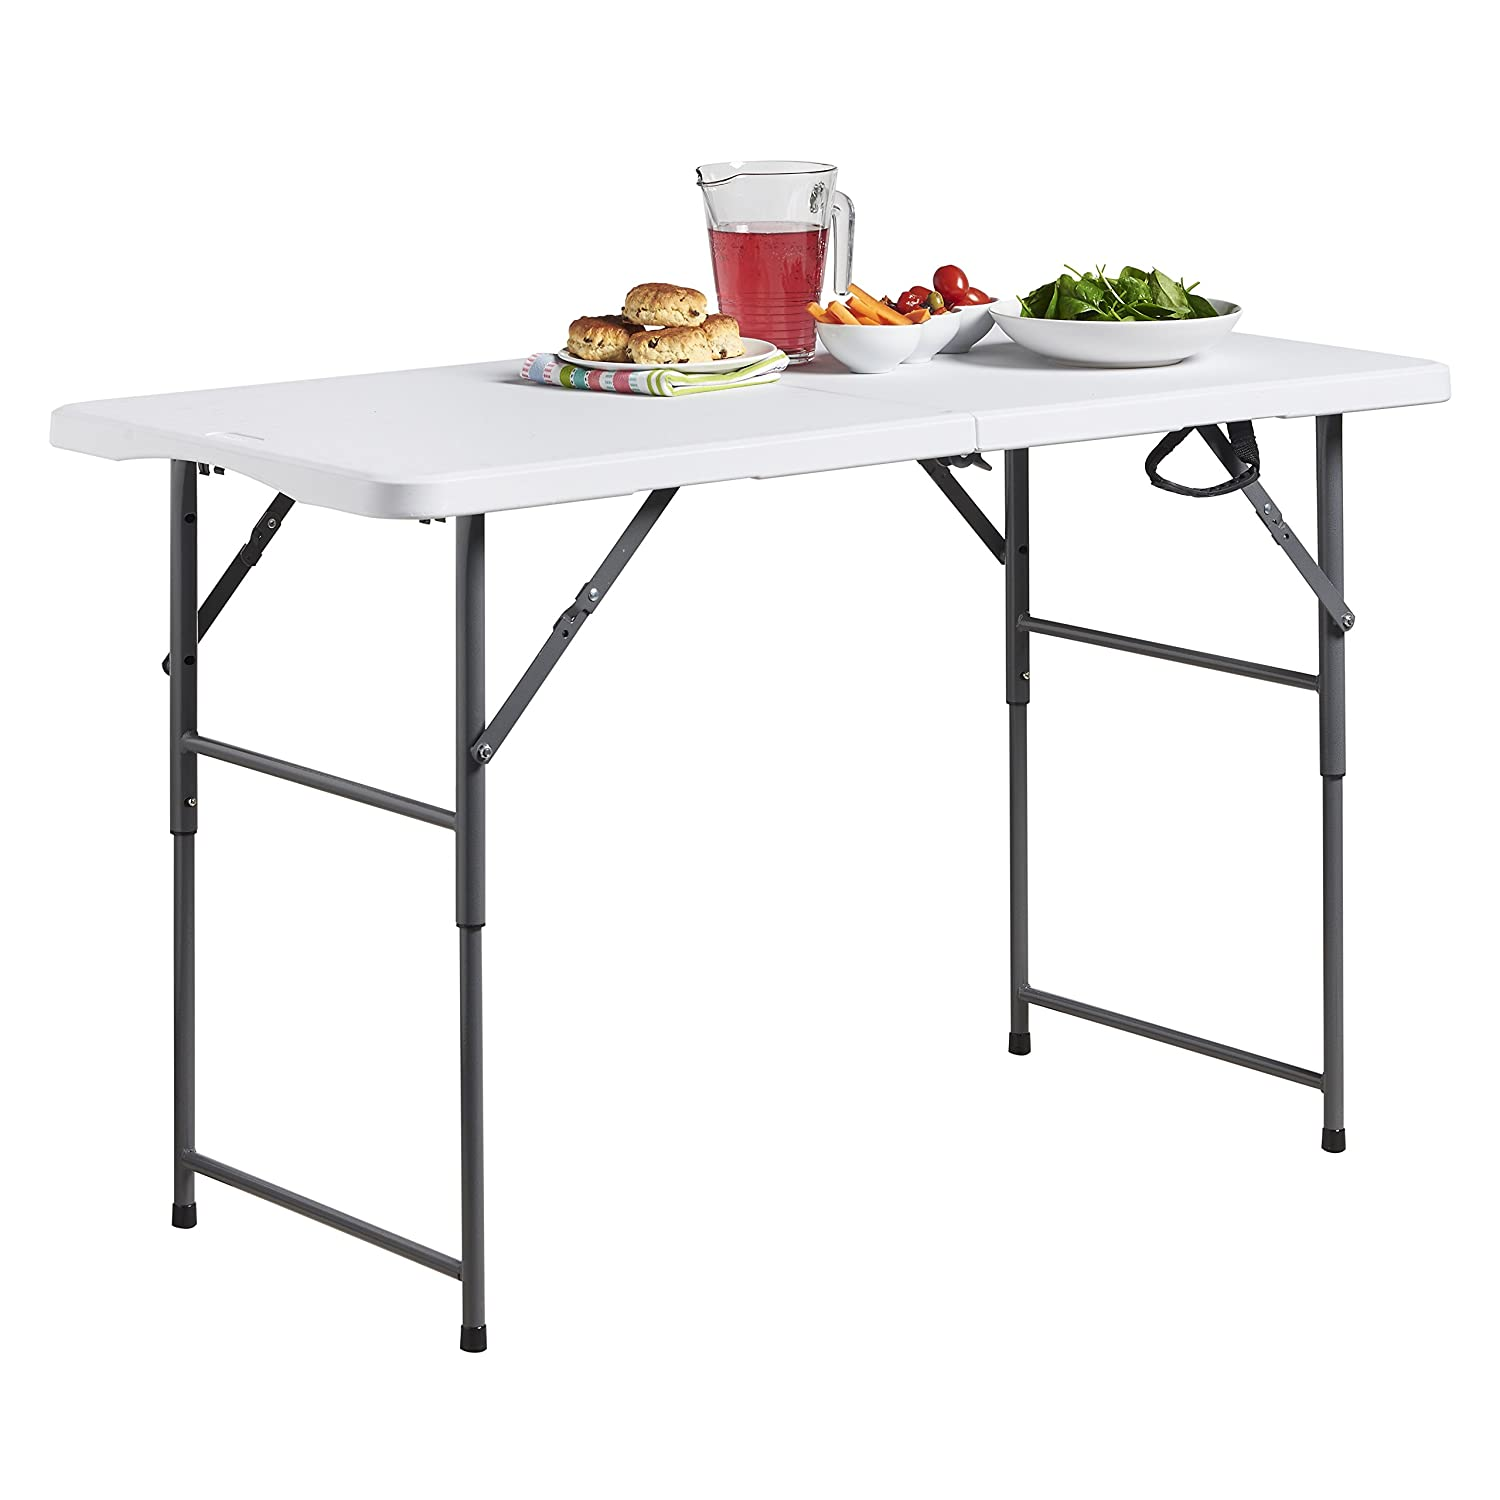 Amazon.com : VonHaus 4ft Folding Table With Adjustable Height Portable Table:  Picnic / Garden / Tailgate / Beach / Camping / Functions / Buffet / BBQ    Max ...